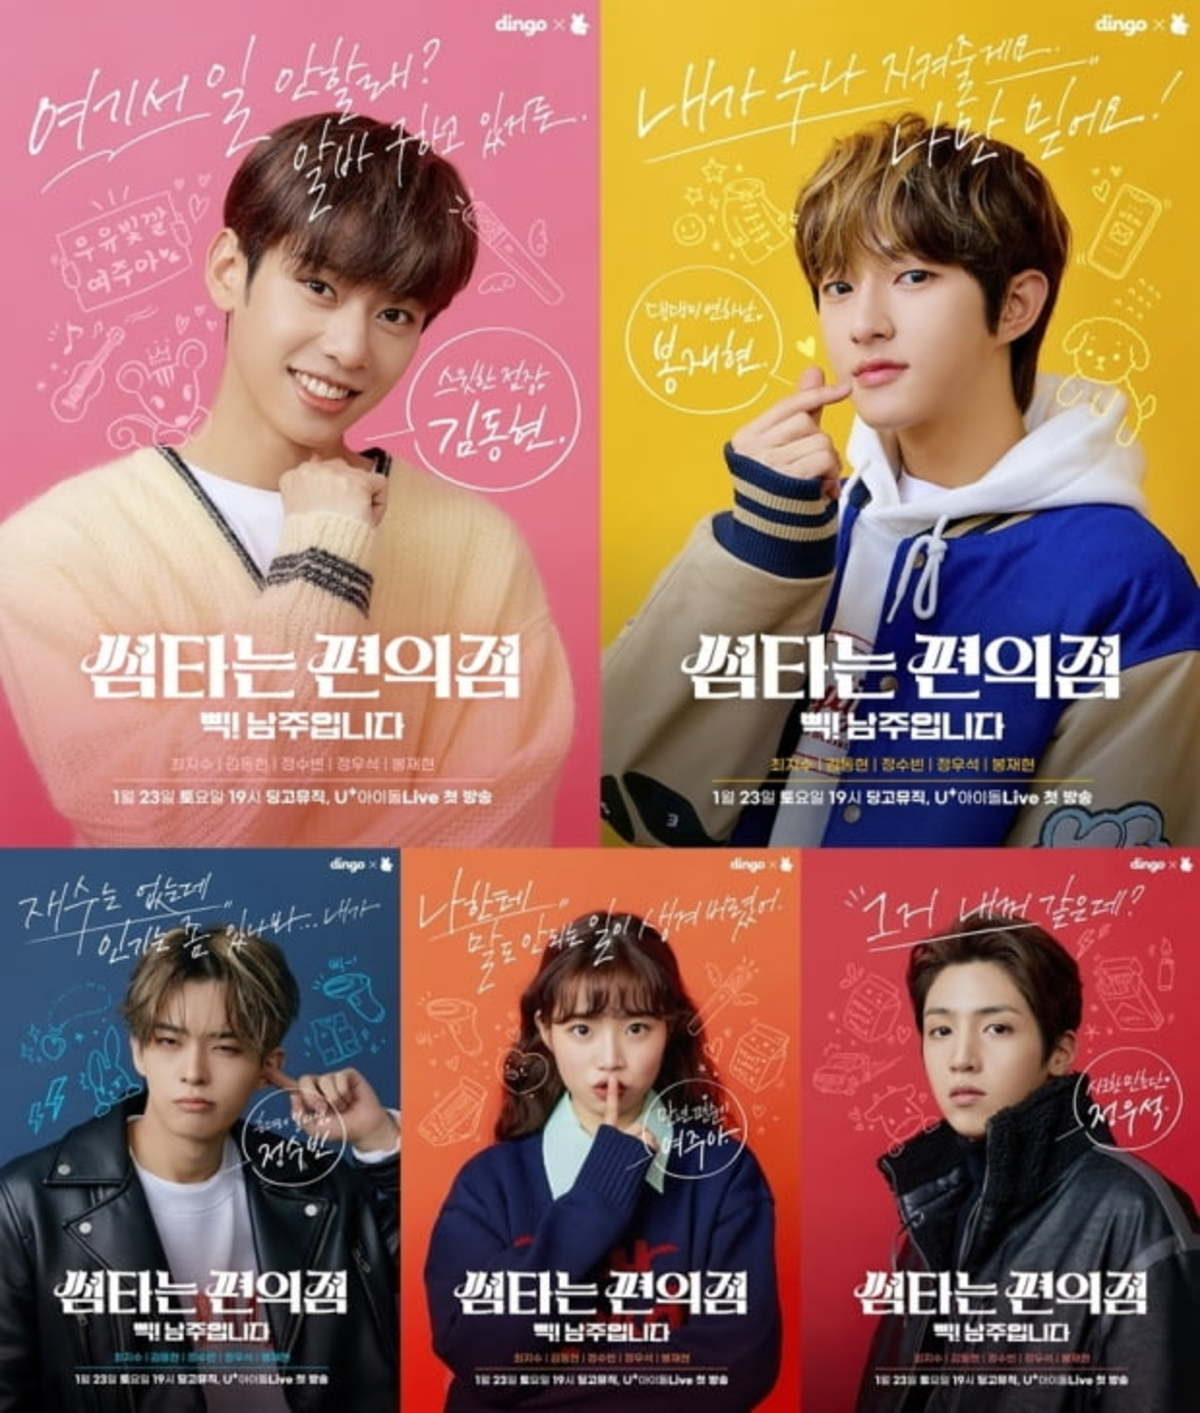 ab6ix-kim-dong-hyun-releases-ost-some-for-web-drama-convenience-store-fling